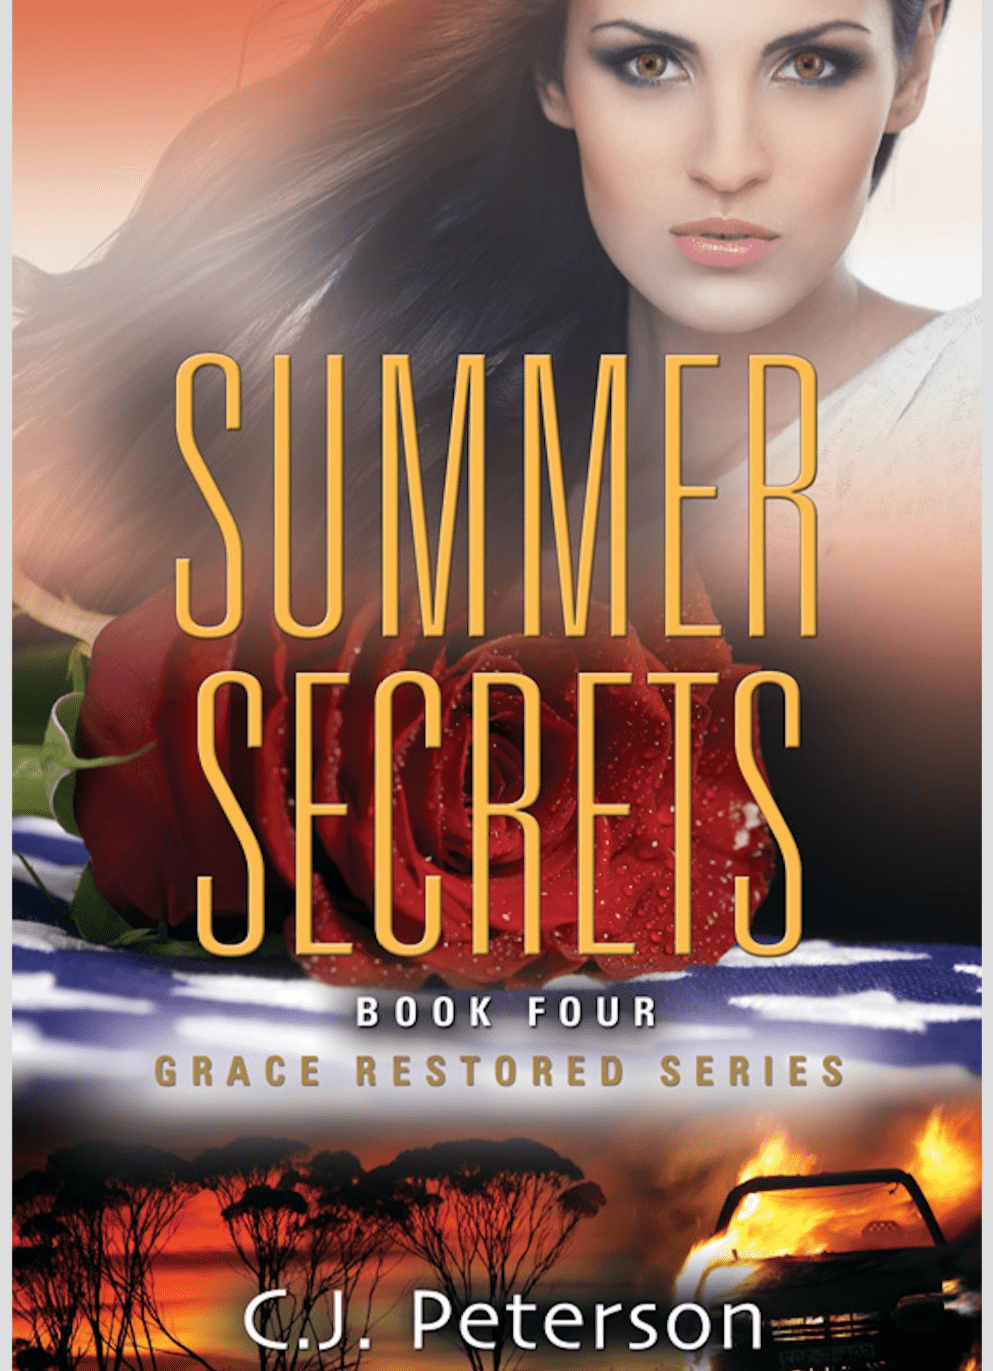 SUMMER SECRETS (Book 4, Grace Restored Series)